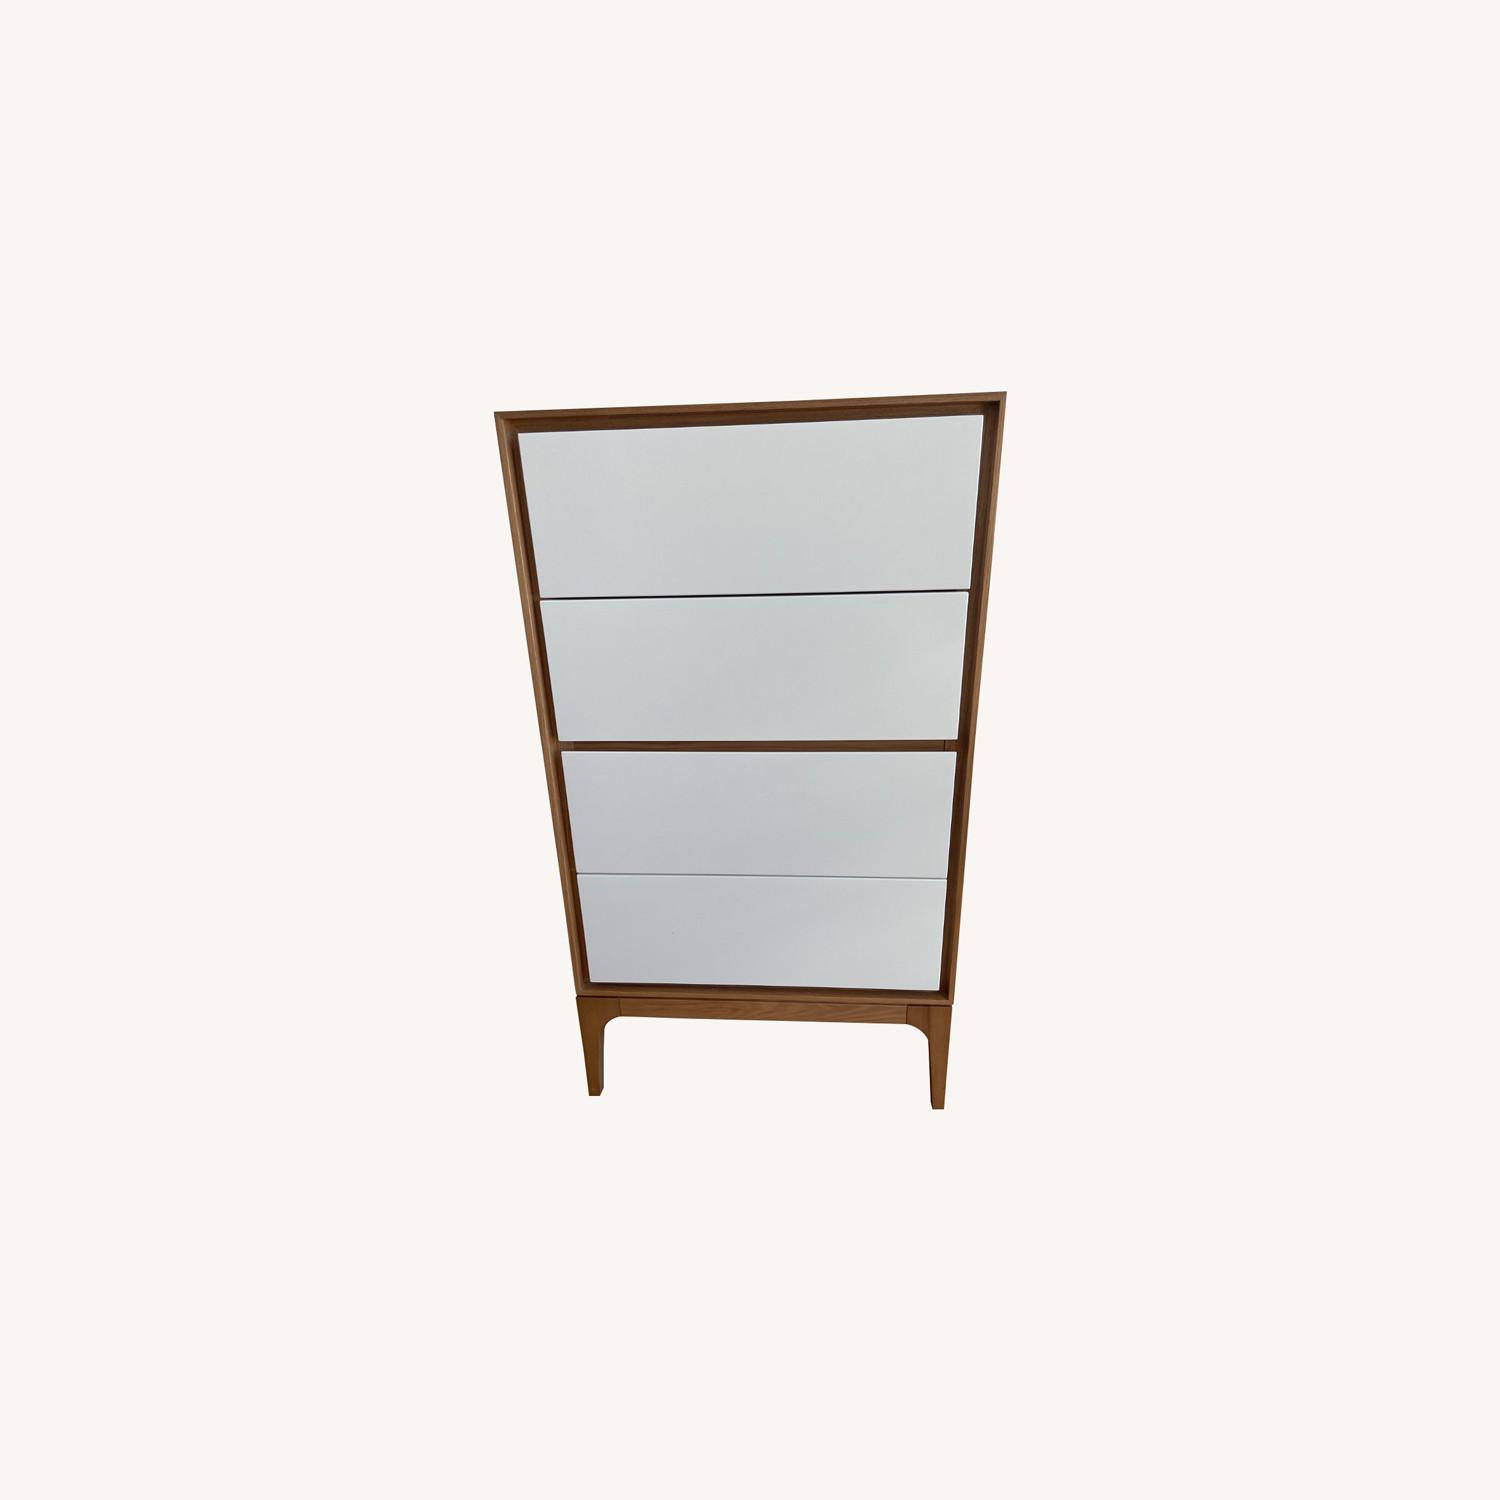 Rove Concepts 2X Wooden Dressers with White Drawers - image-0